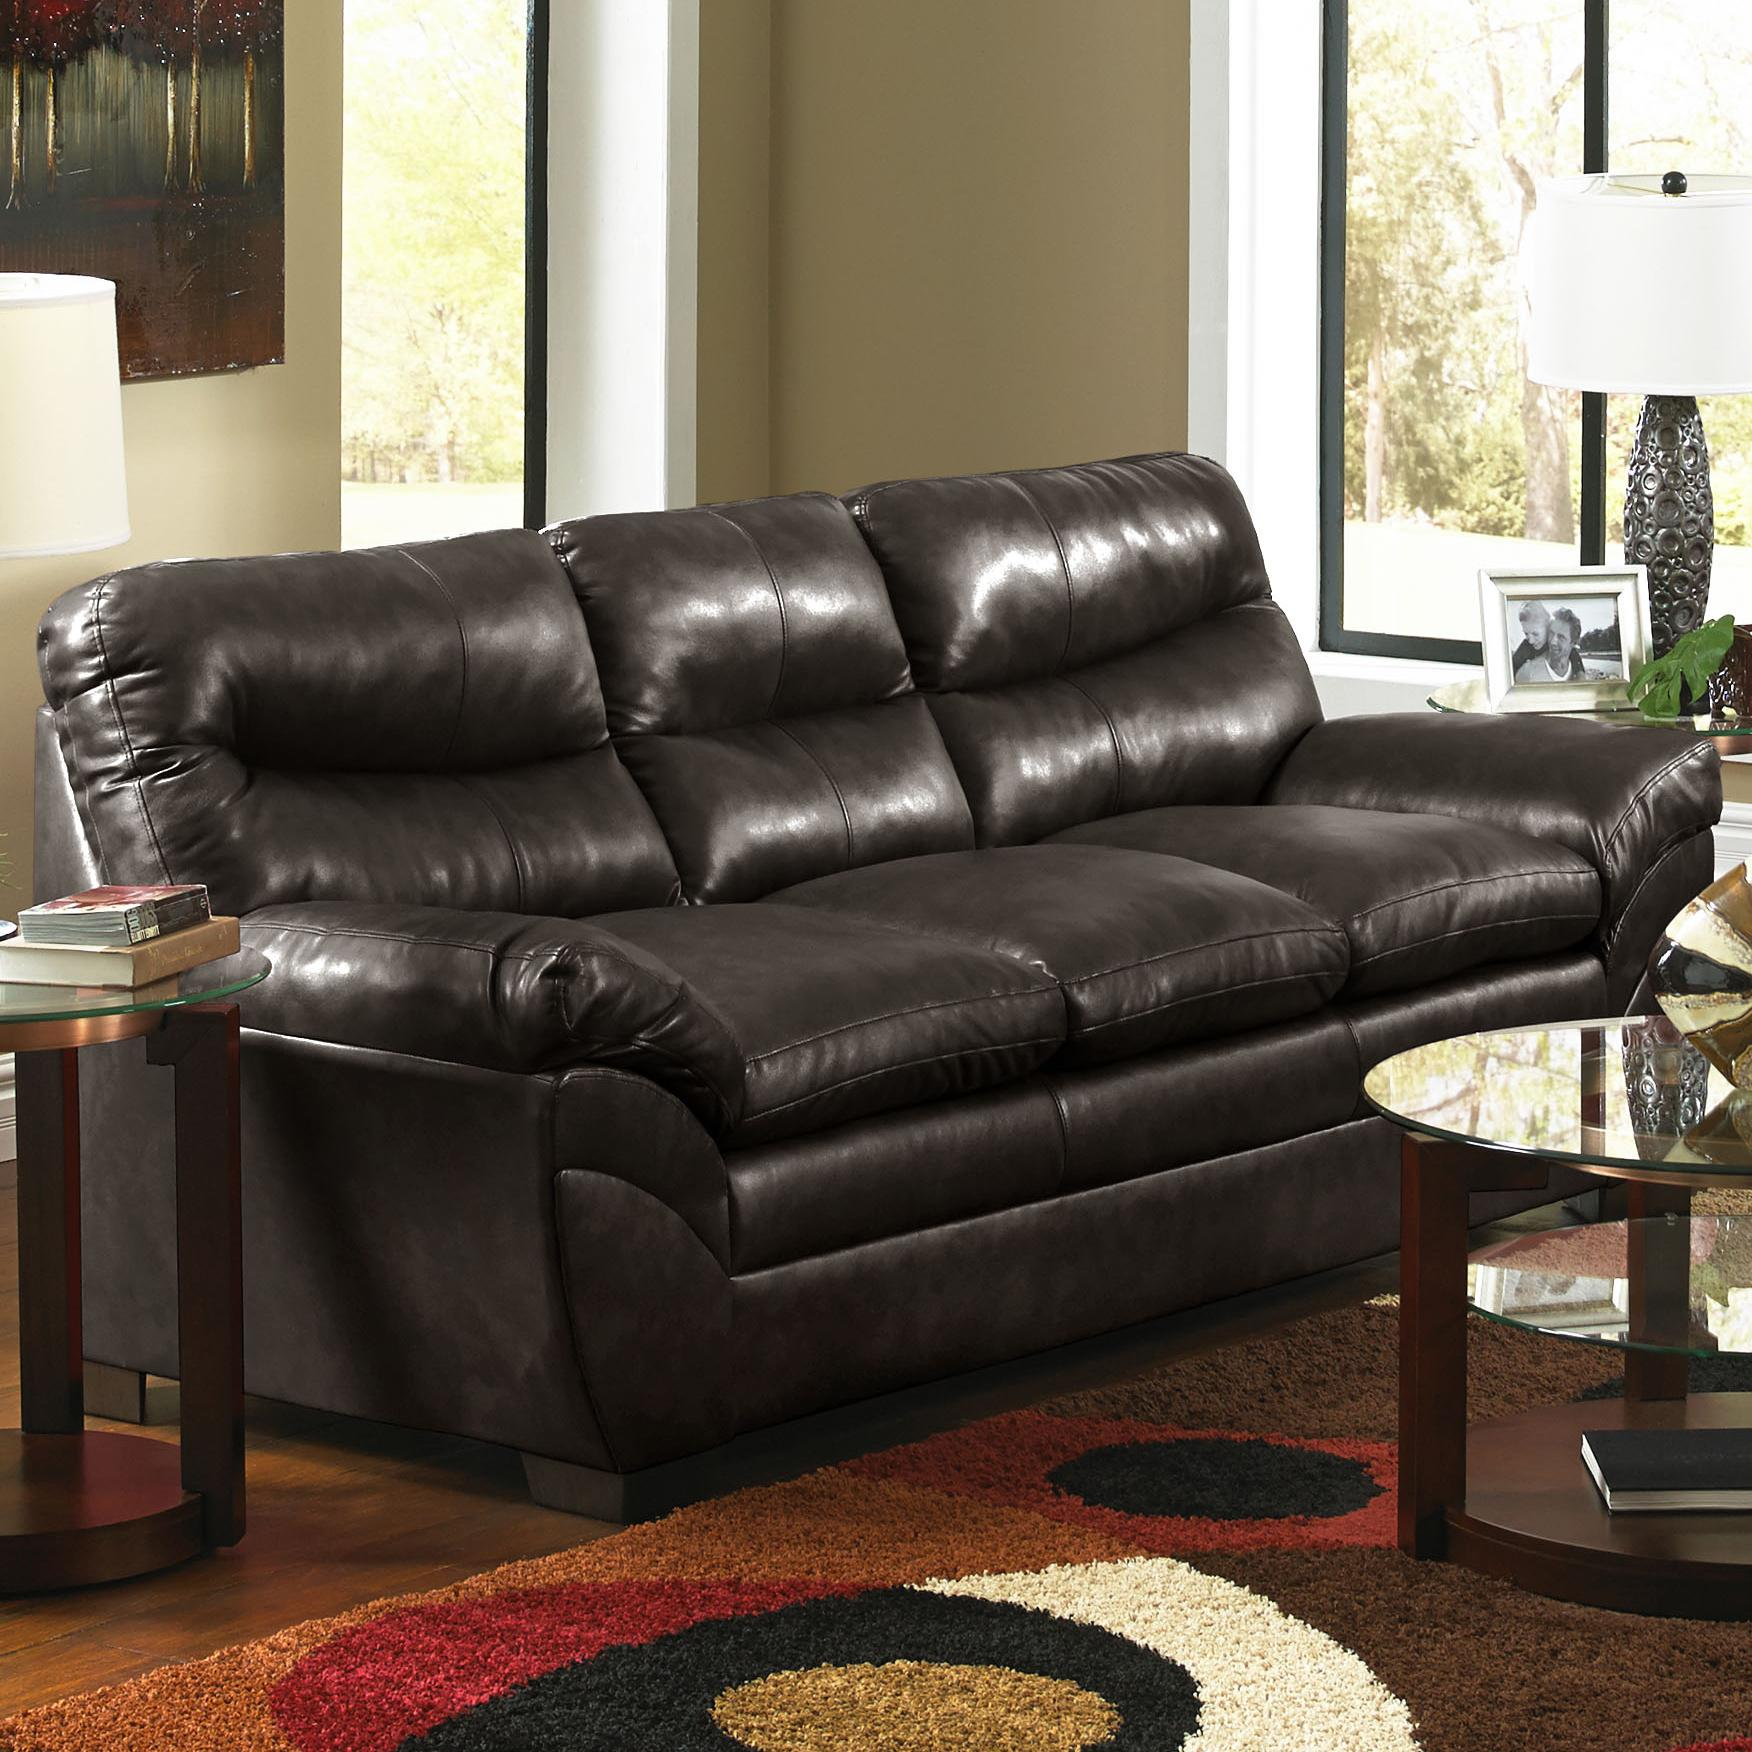 United Furniture Industries 9515 Sofa - Item Number: 9515 Sofa Espresso